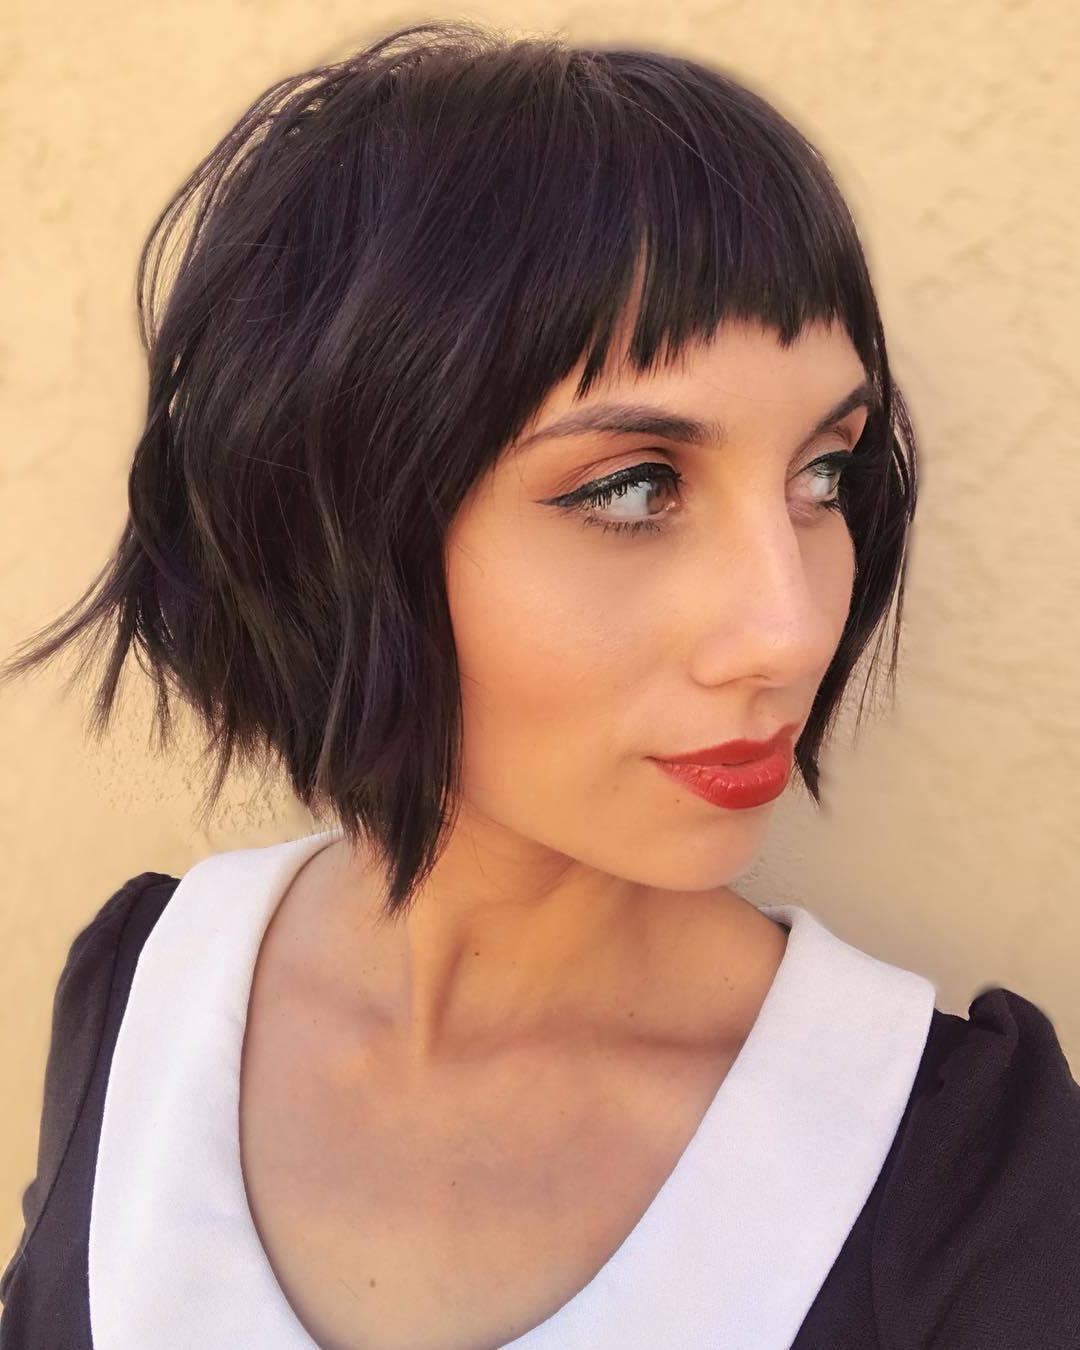 Well Known Short Layered Bob Hairstyles With Feathered Bangs In 55 Hot Short Bobs With Bangs Haircuts And Hairstyles For  (View 12 of 20)